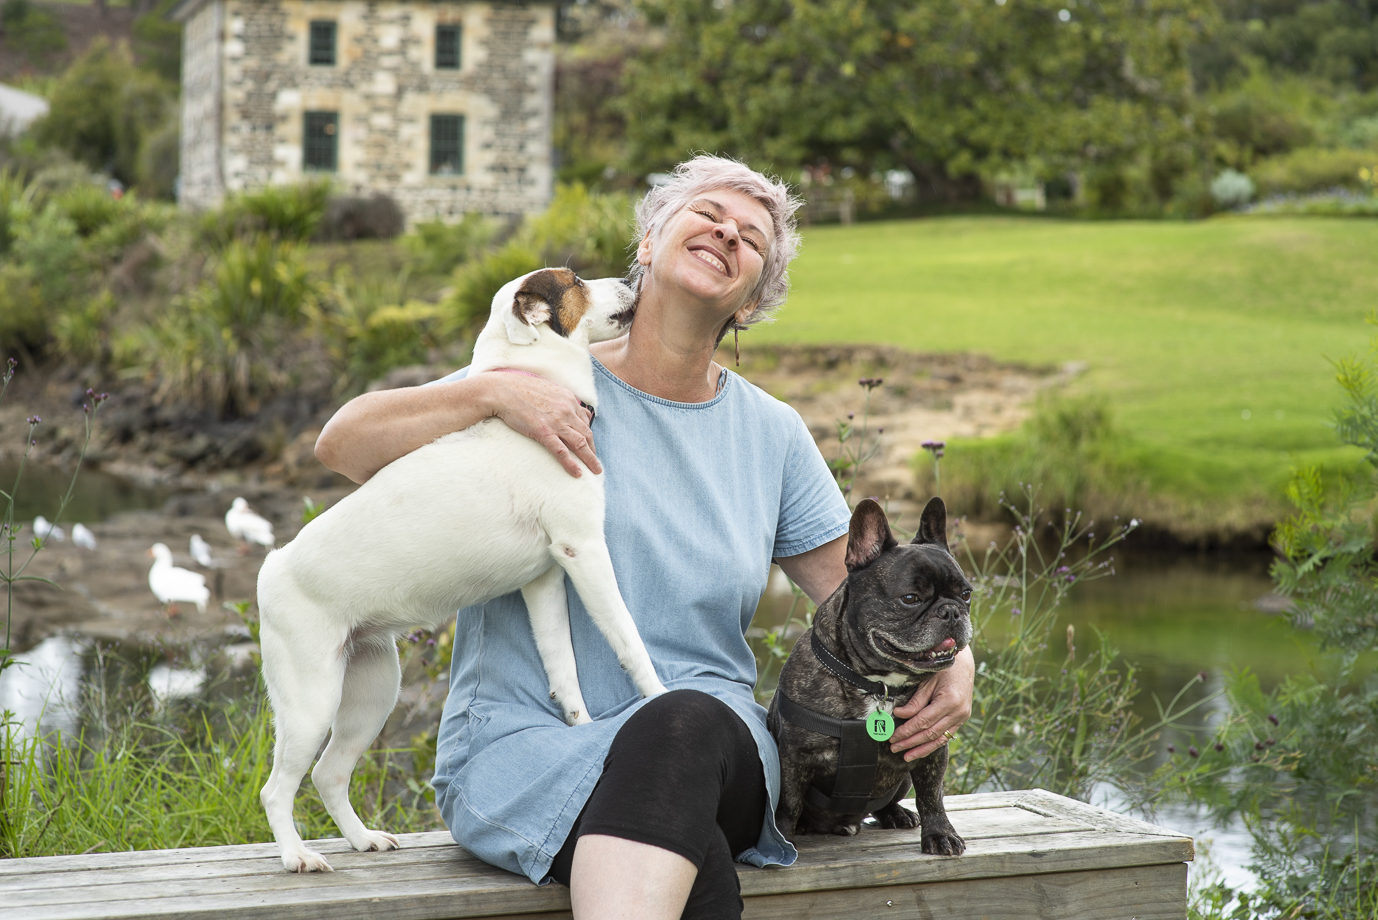 Janine & Pooches.  PHOTOGRAPHY: Images copyright Claire Gordon, Flash Gordon Photography at  Take Five Agency, Design & Marketing